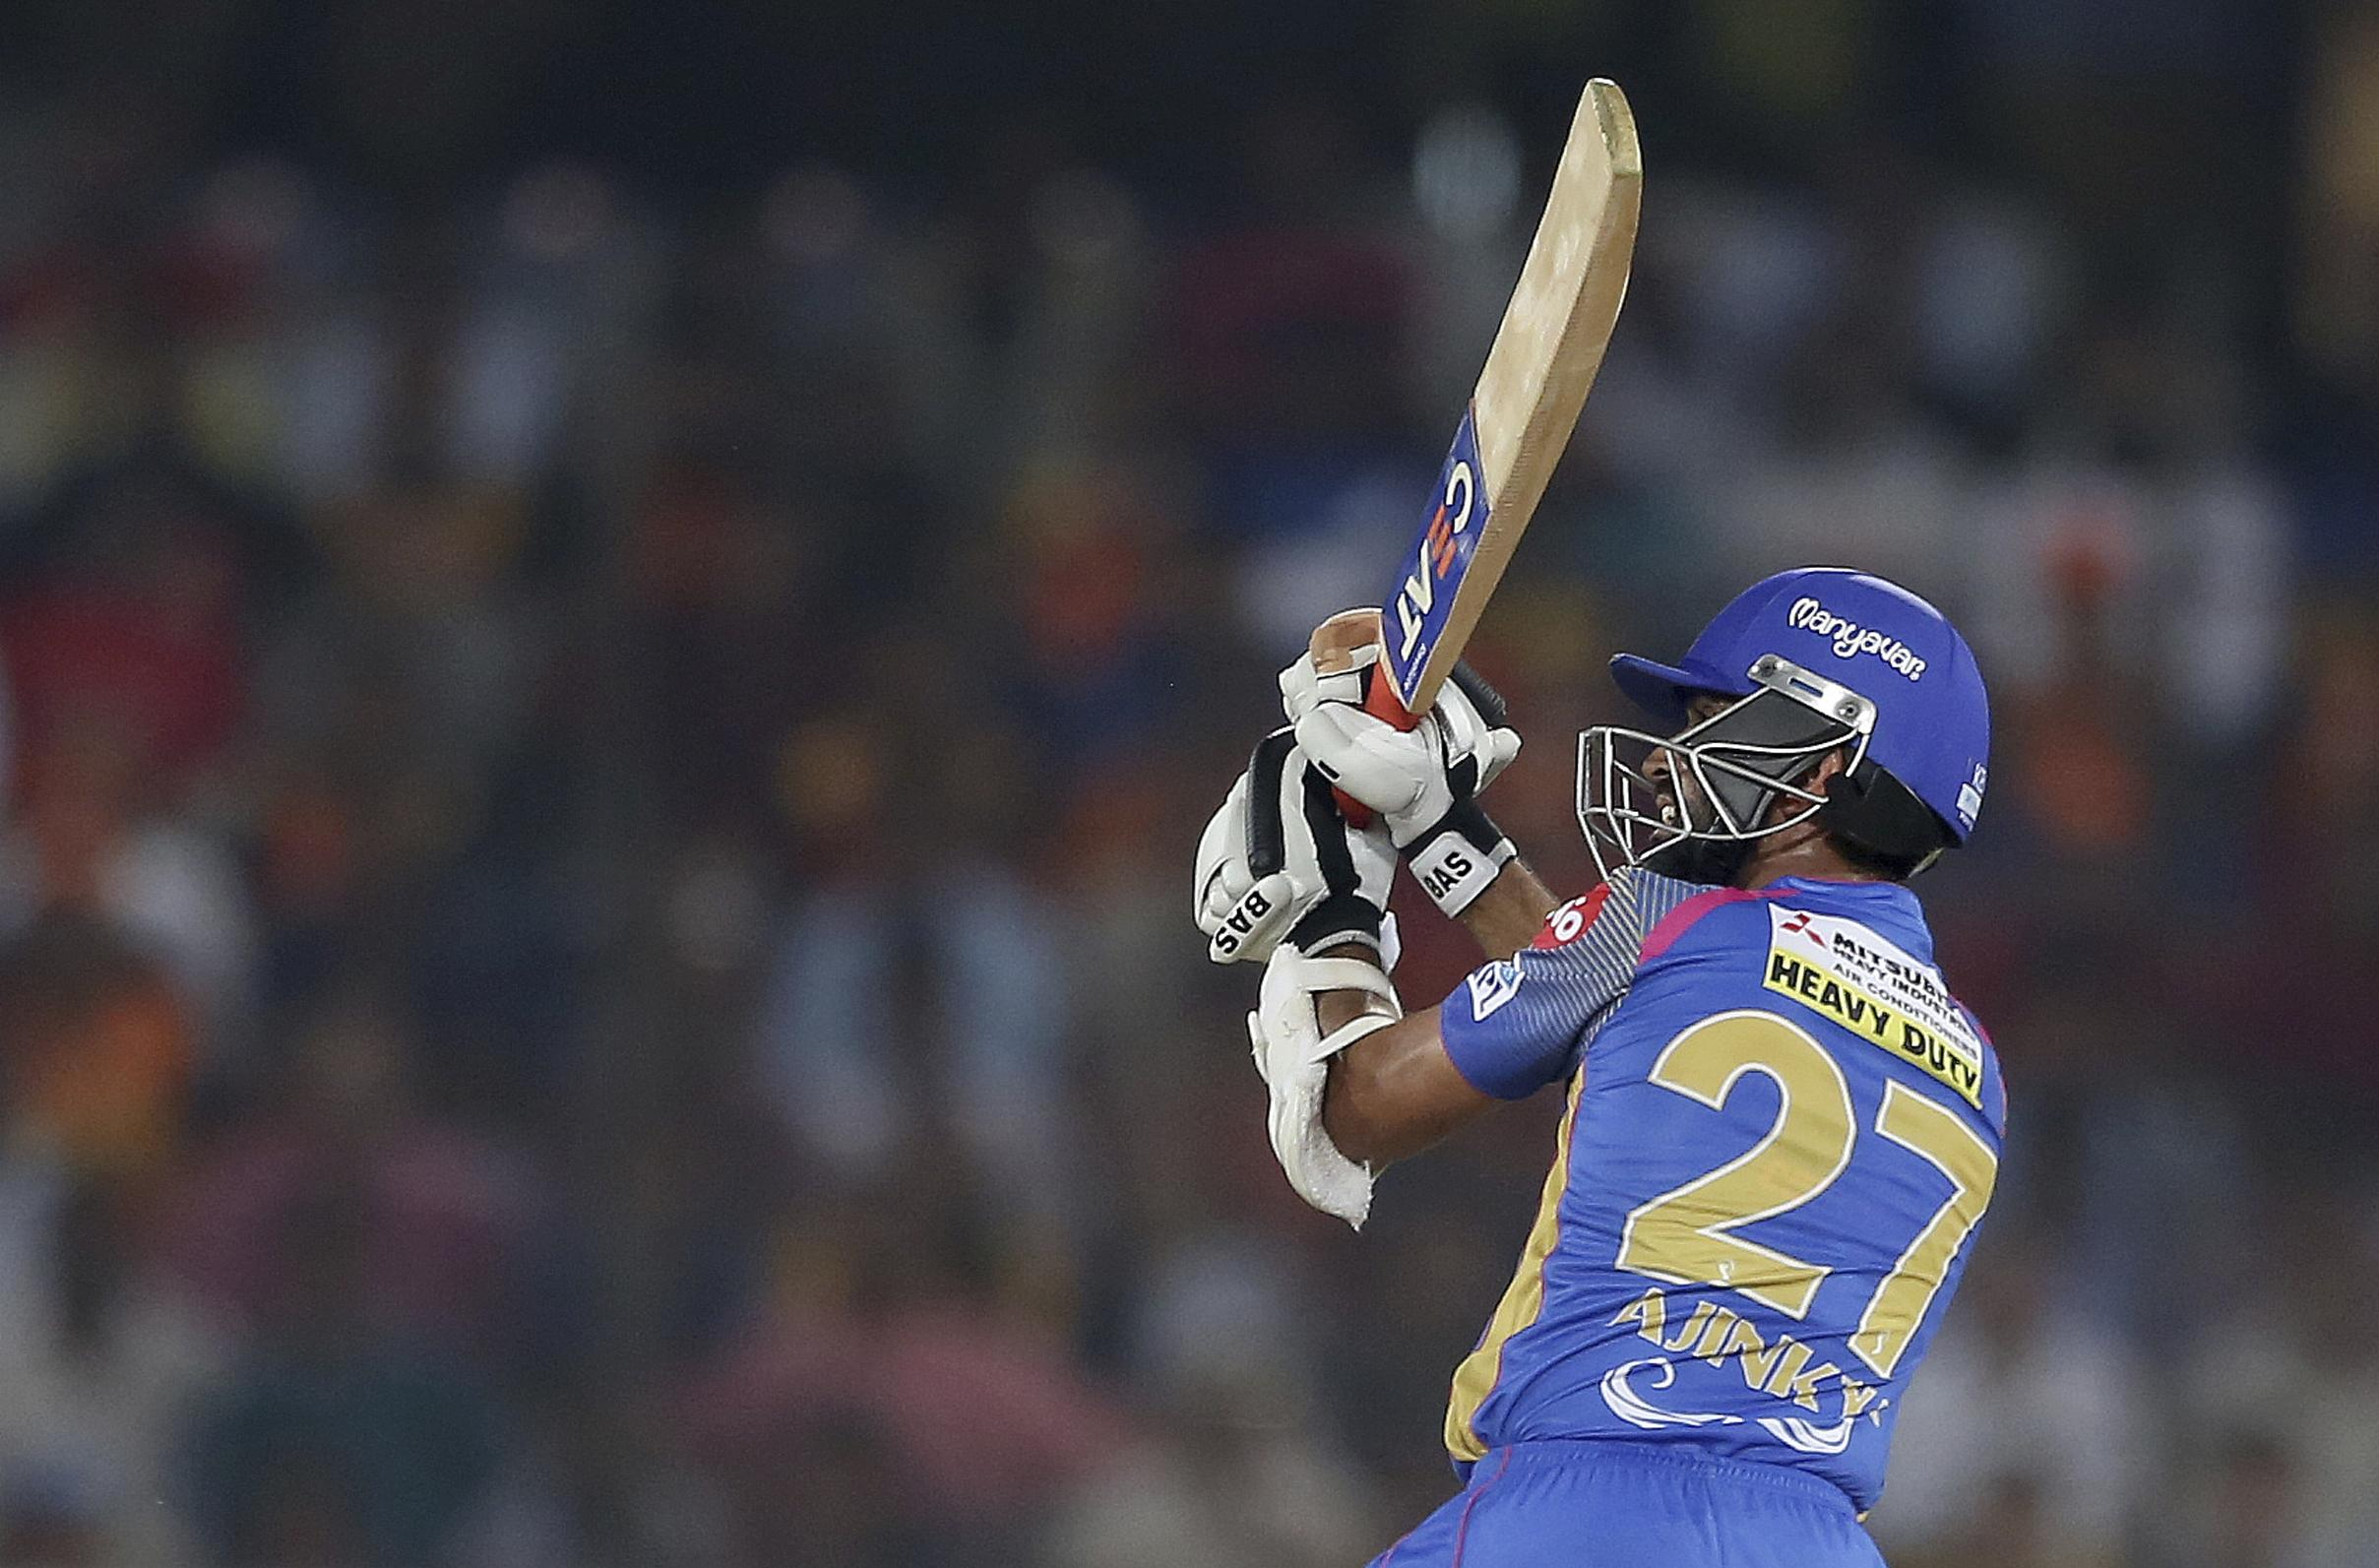 Ajinkya Rahane hit 45 from 40 deliveries at the top of the Royals order